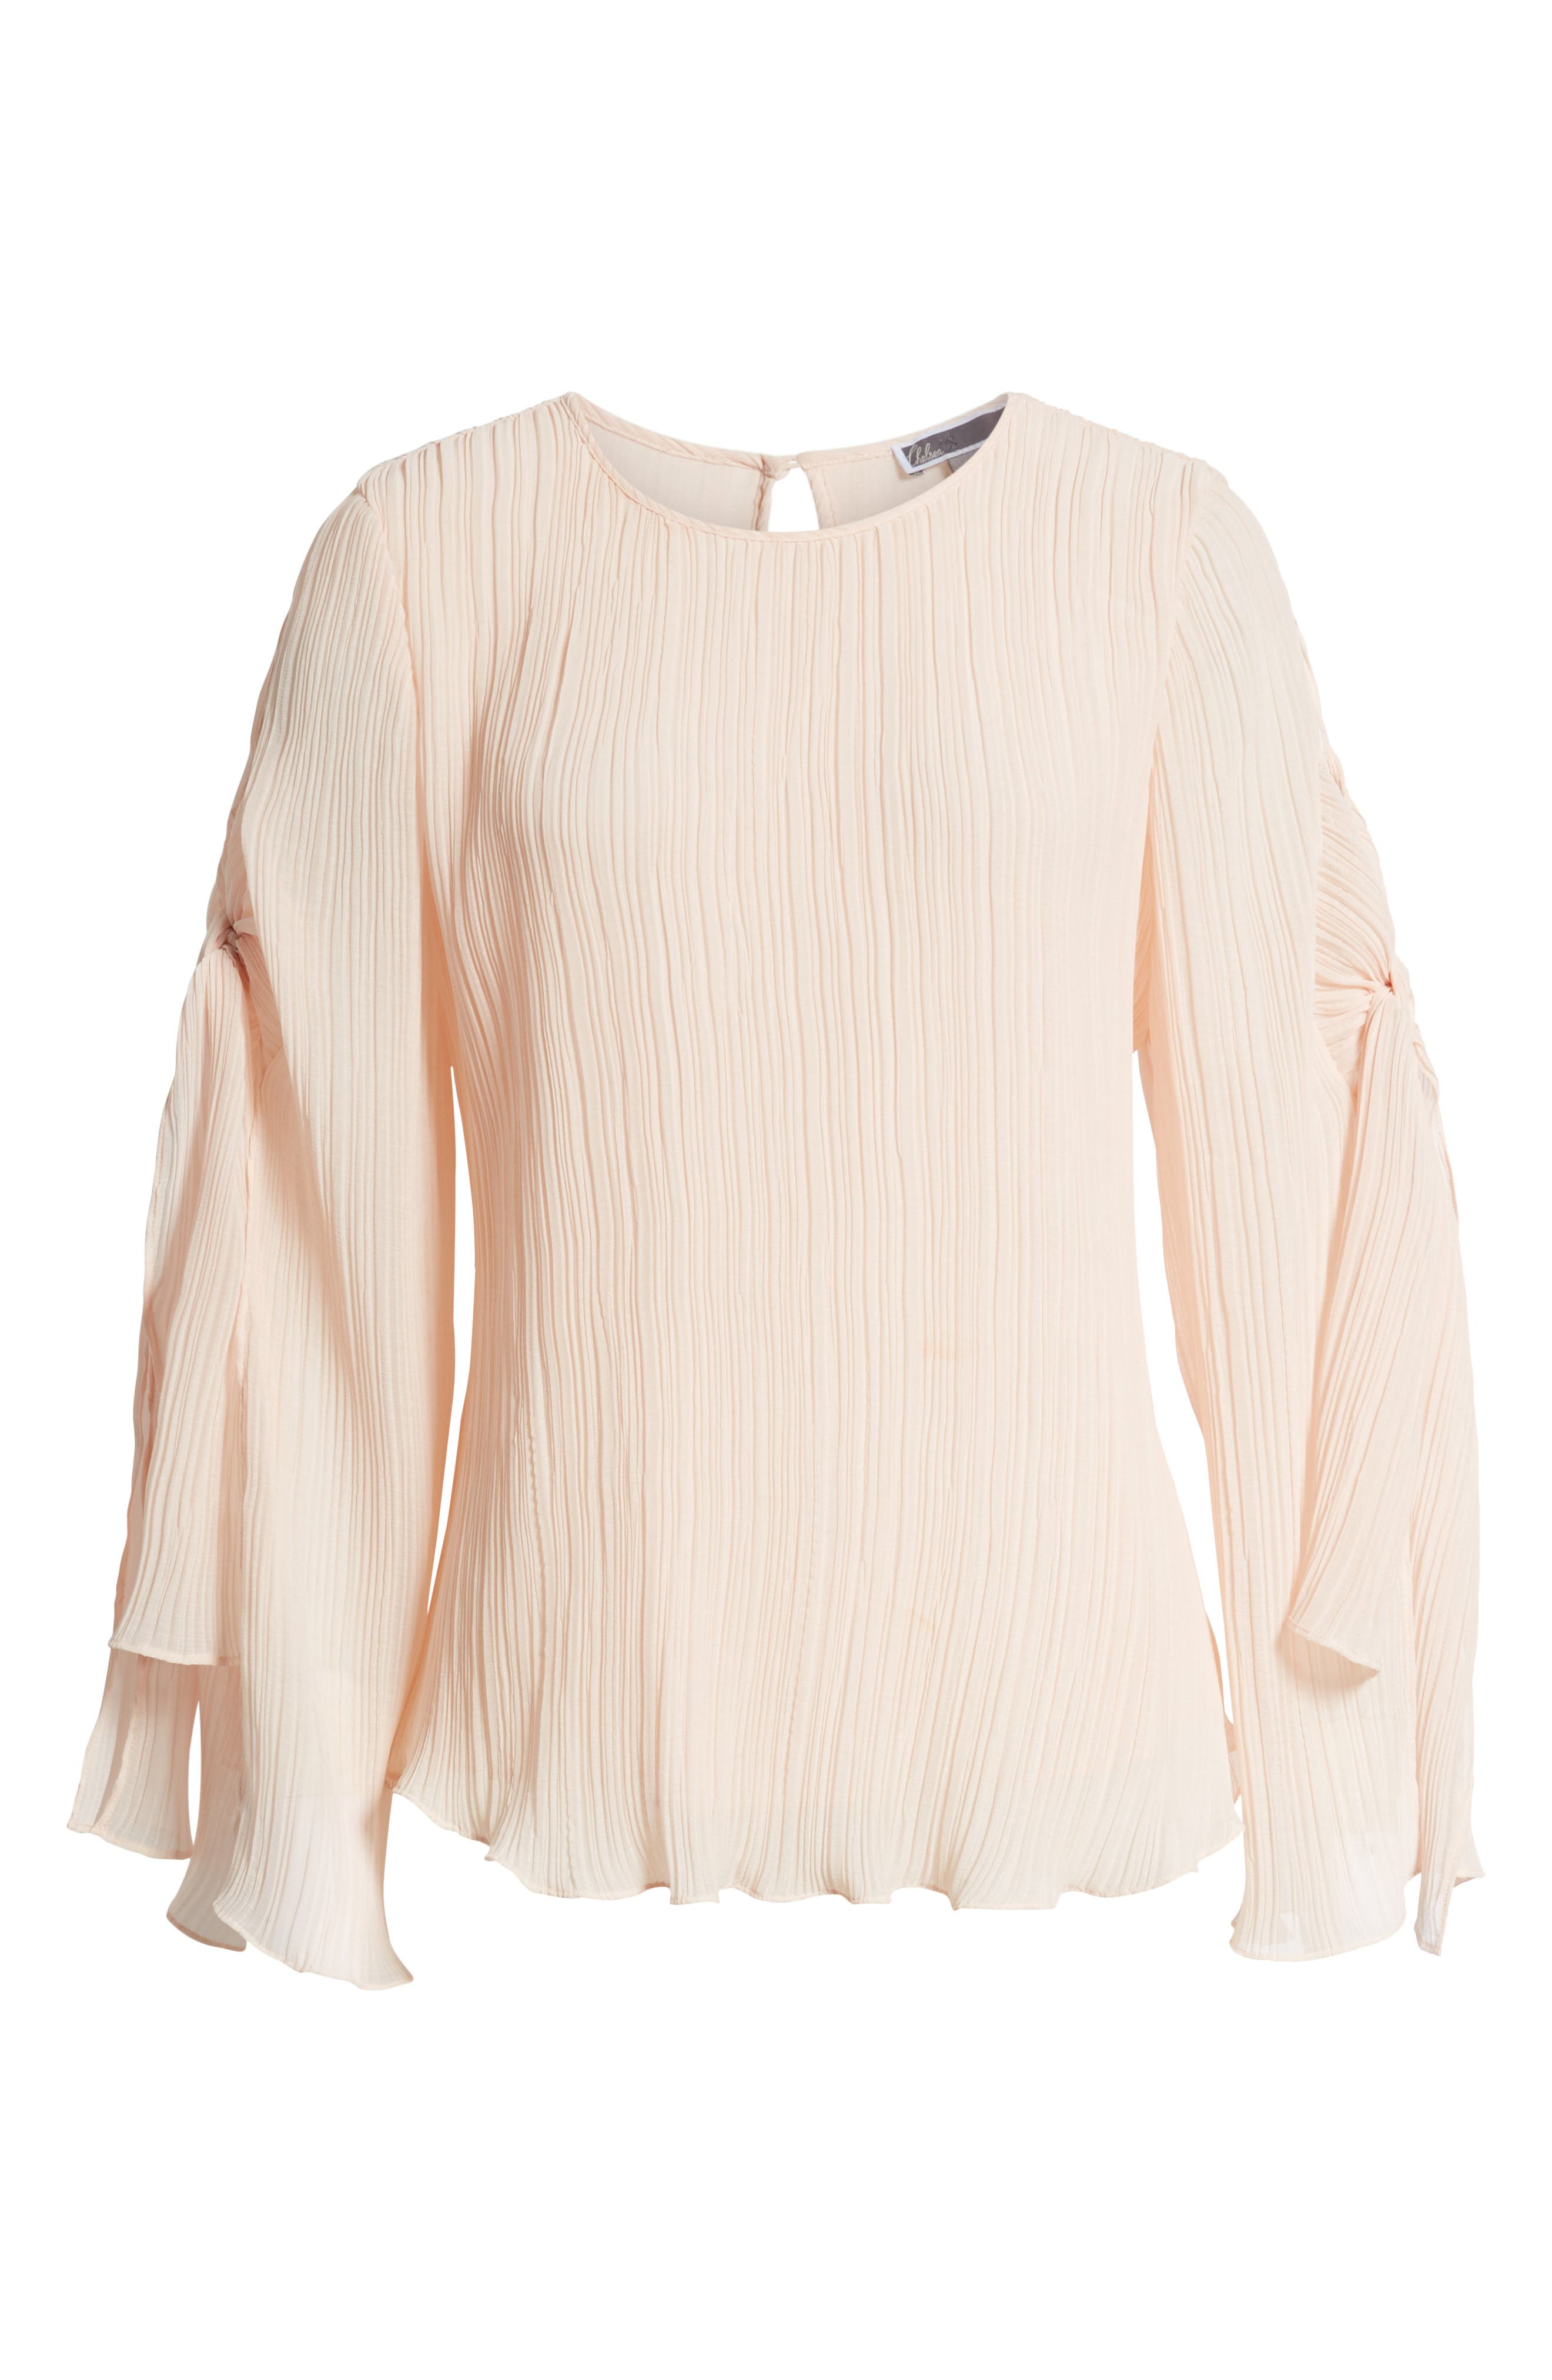 Pleated Tie Sleeve Top,                             Alternate thumbnail 7, color,                             680